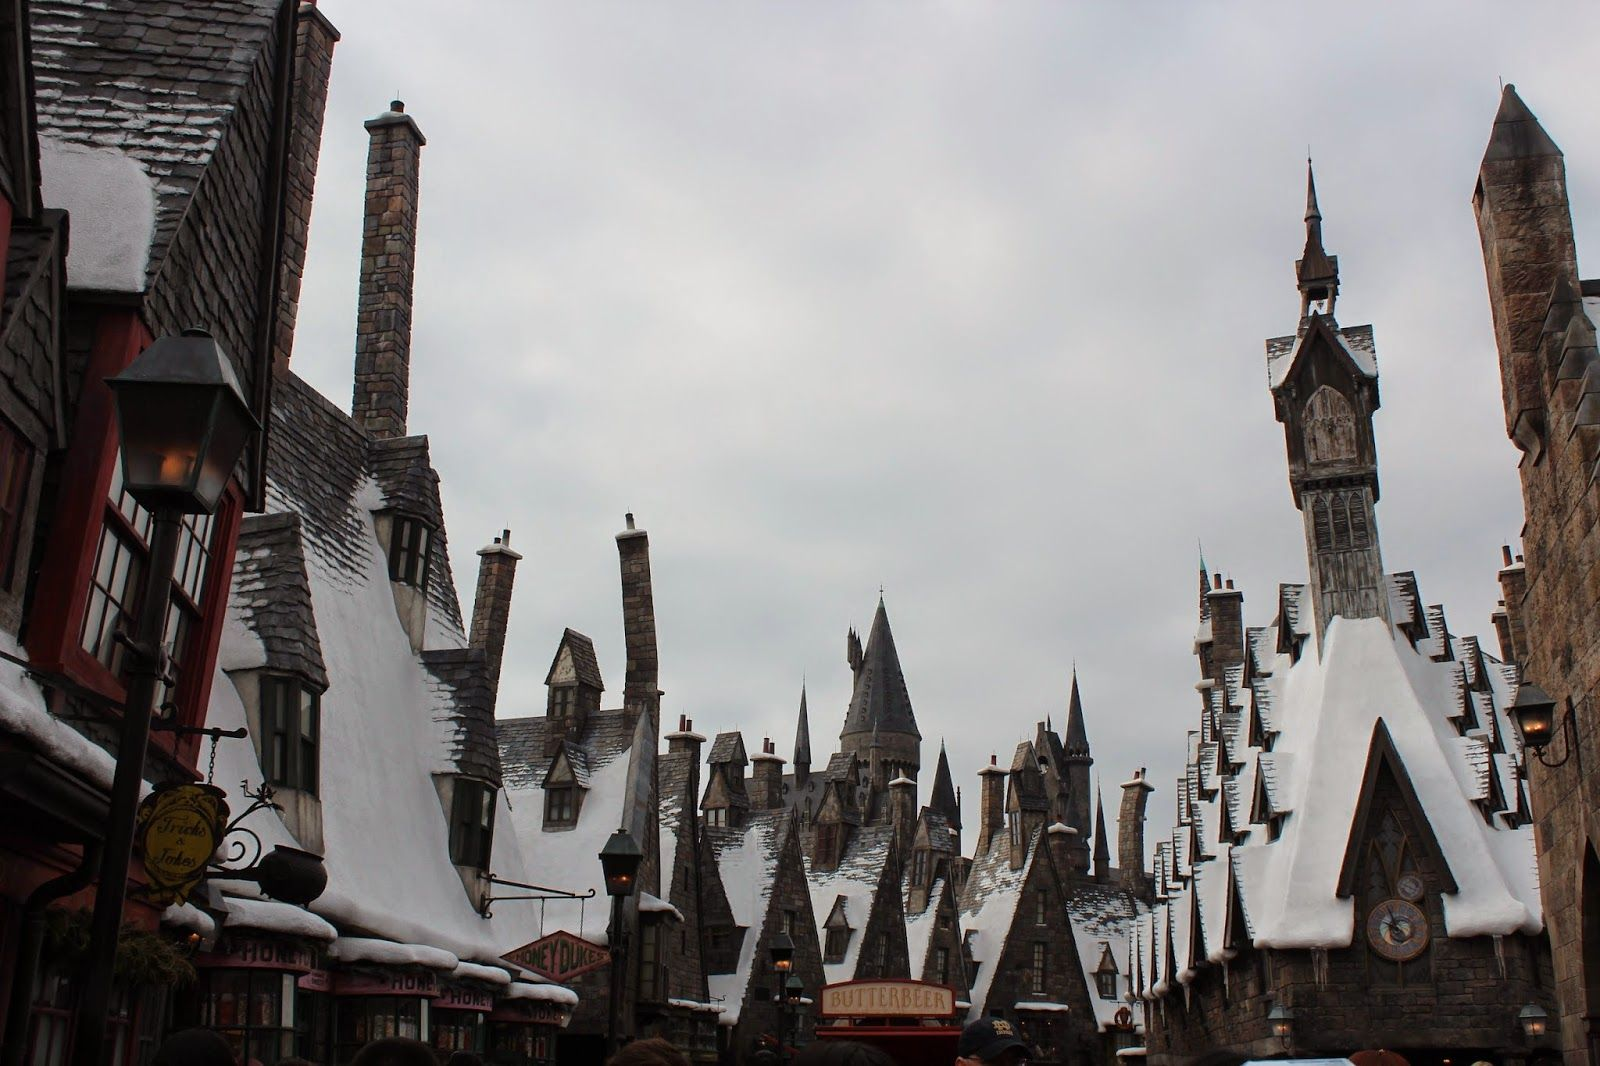 This Place: The Wizarding World of Harry Potter